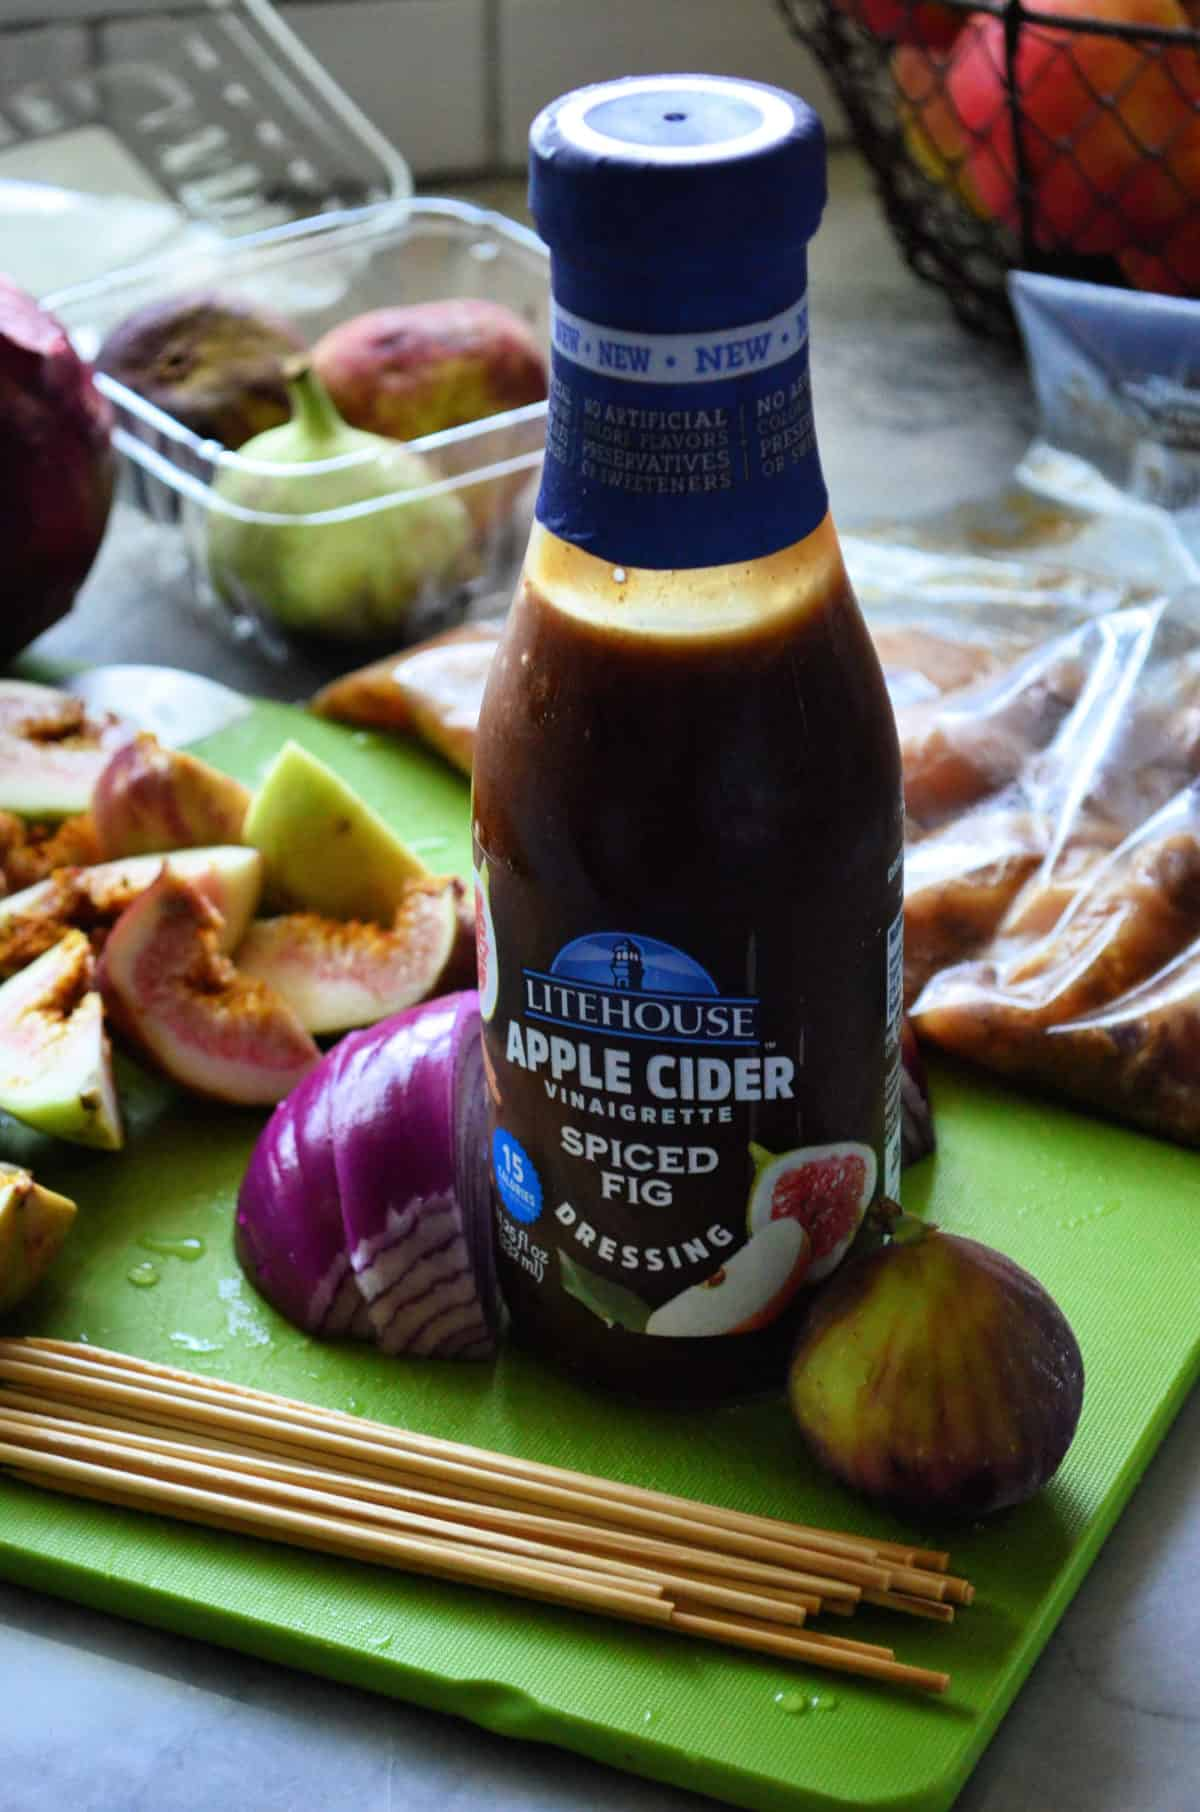 Bottle of Litehouse Apple cider vinaigrette spiced fig dressing on cutting board with skewer ingredients.